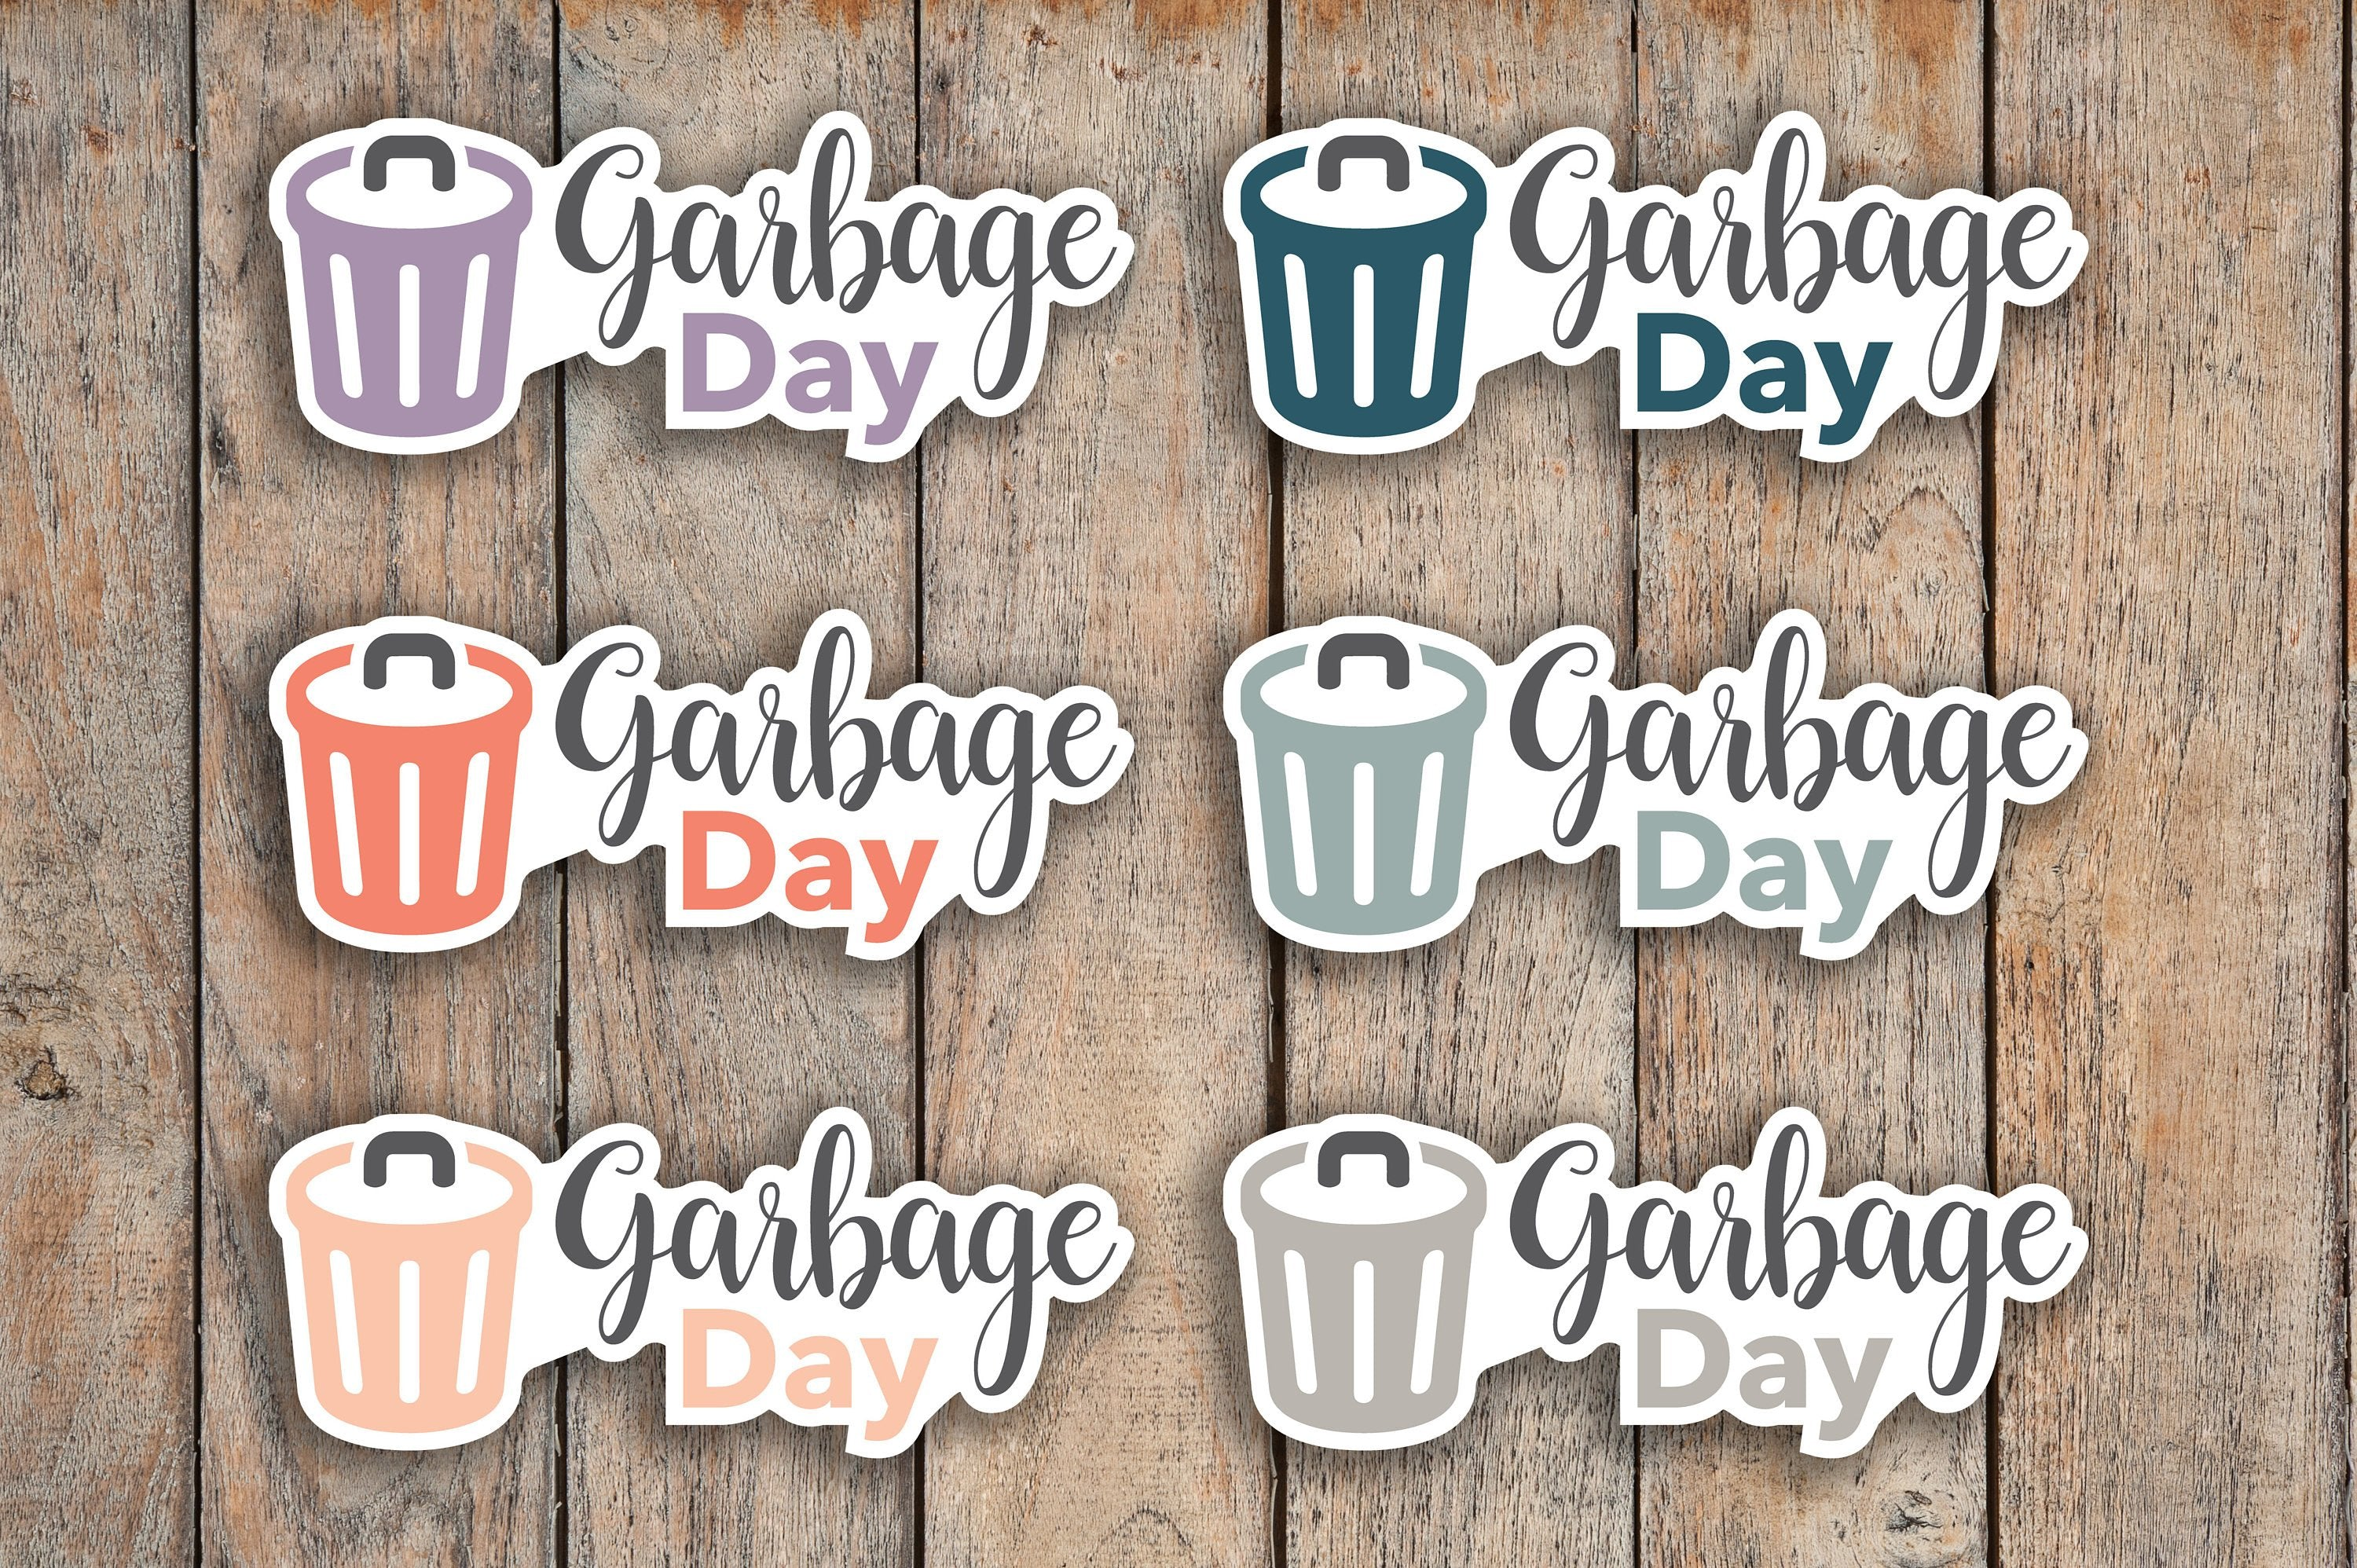 28 Garbage Day, Recycling Day, Trash Icon, Garbage Can, Trash Day, Daily Chore Icon Planner Sticker for 2018 inkWELL Press Planners IWP-Q121